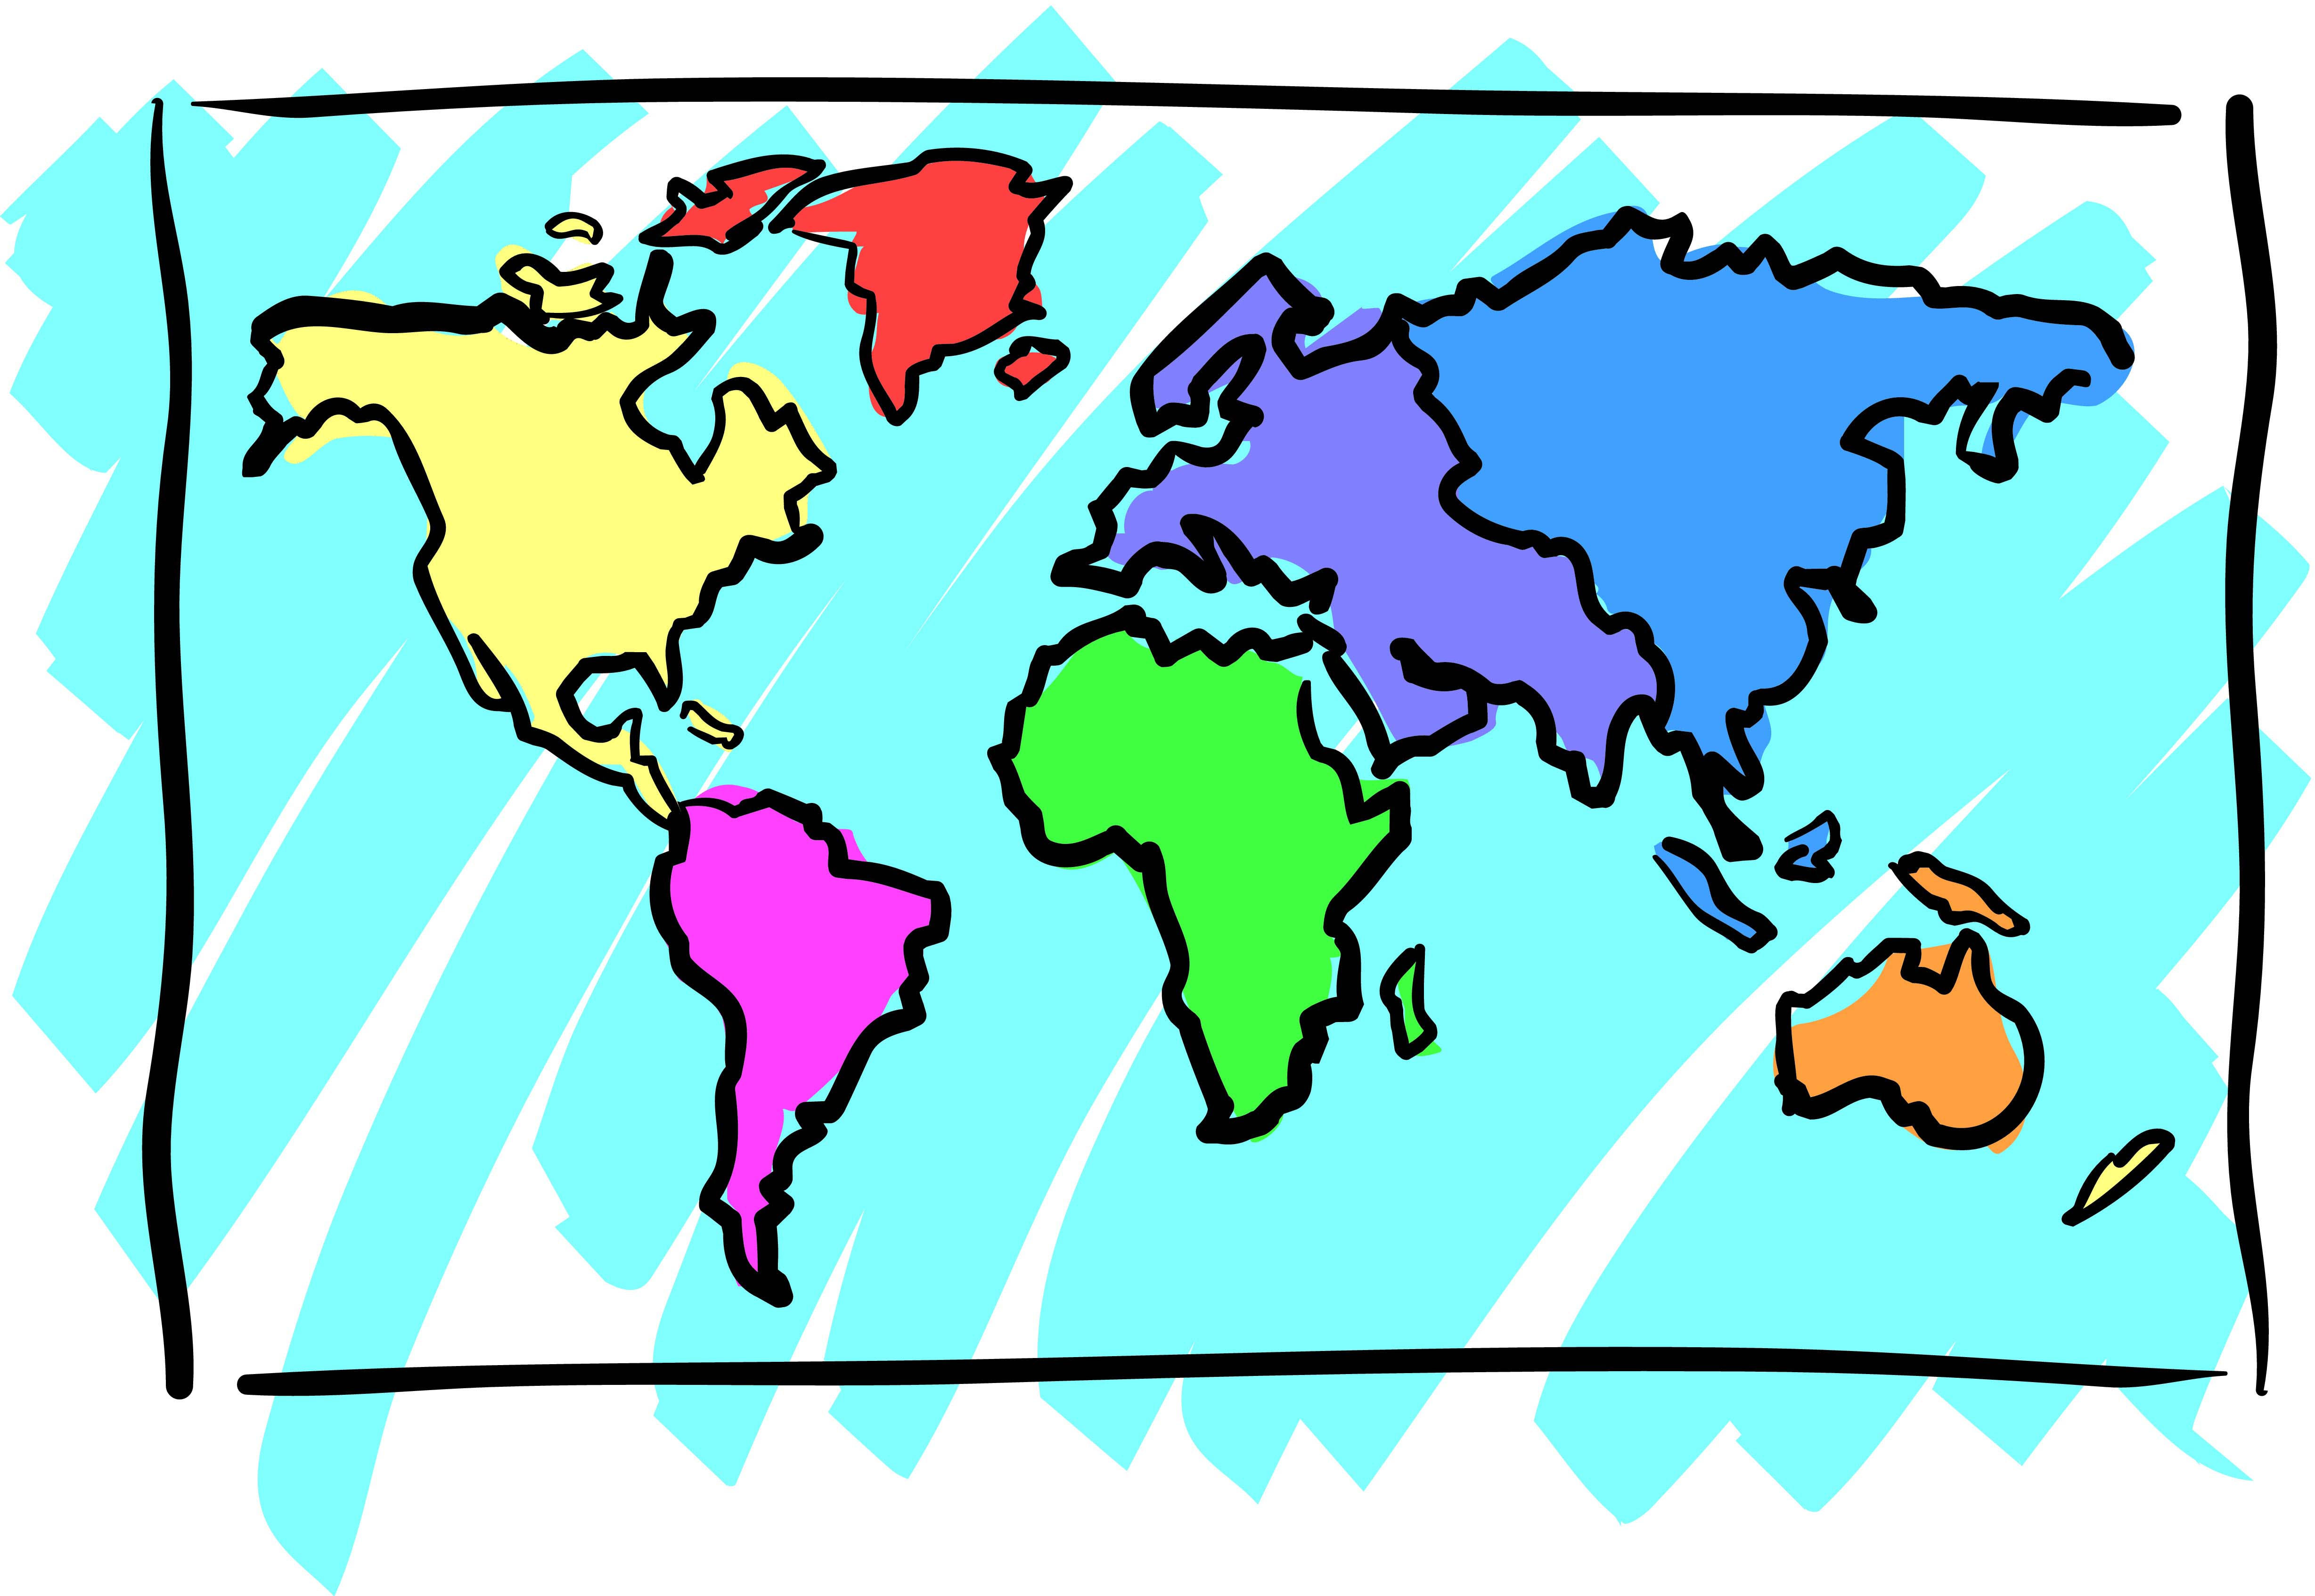 clip art maps. Free map clipart images